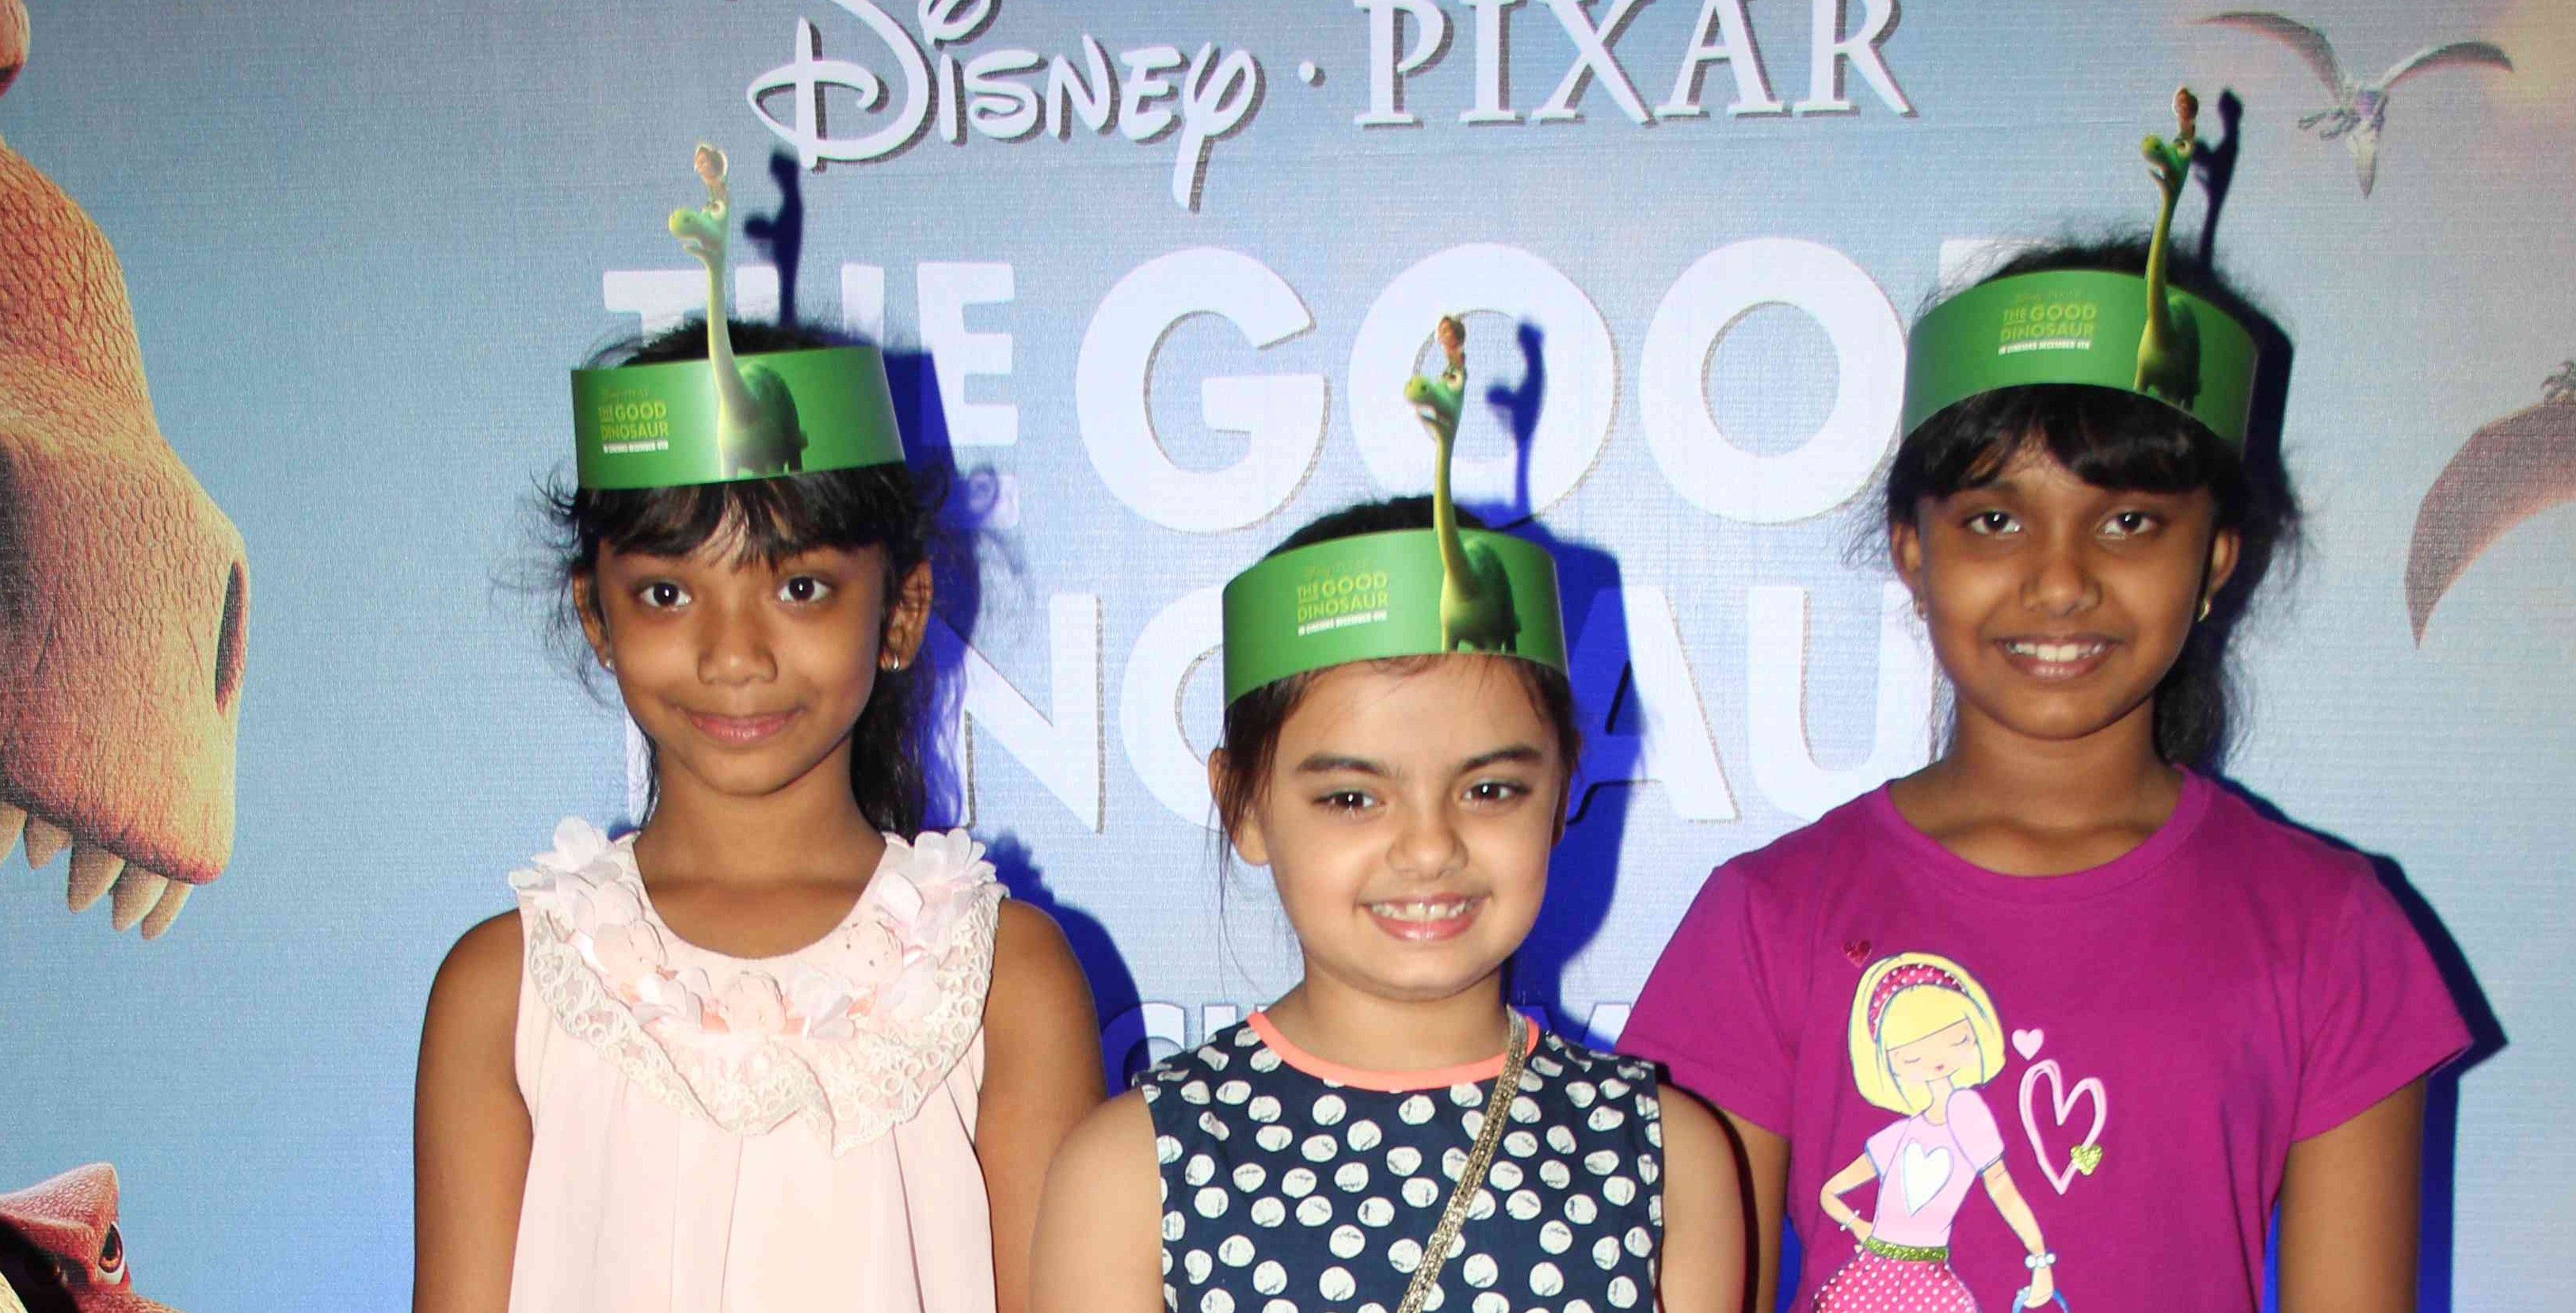 TV Celebrities and kids screen 'The Good Dinosaur'